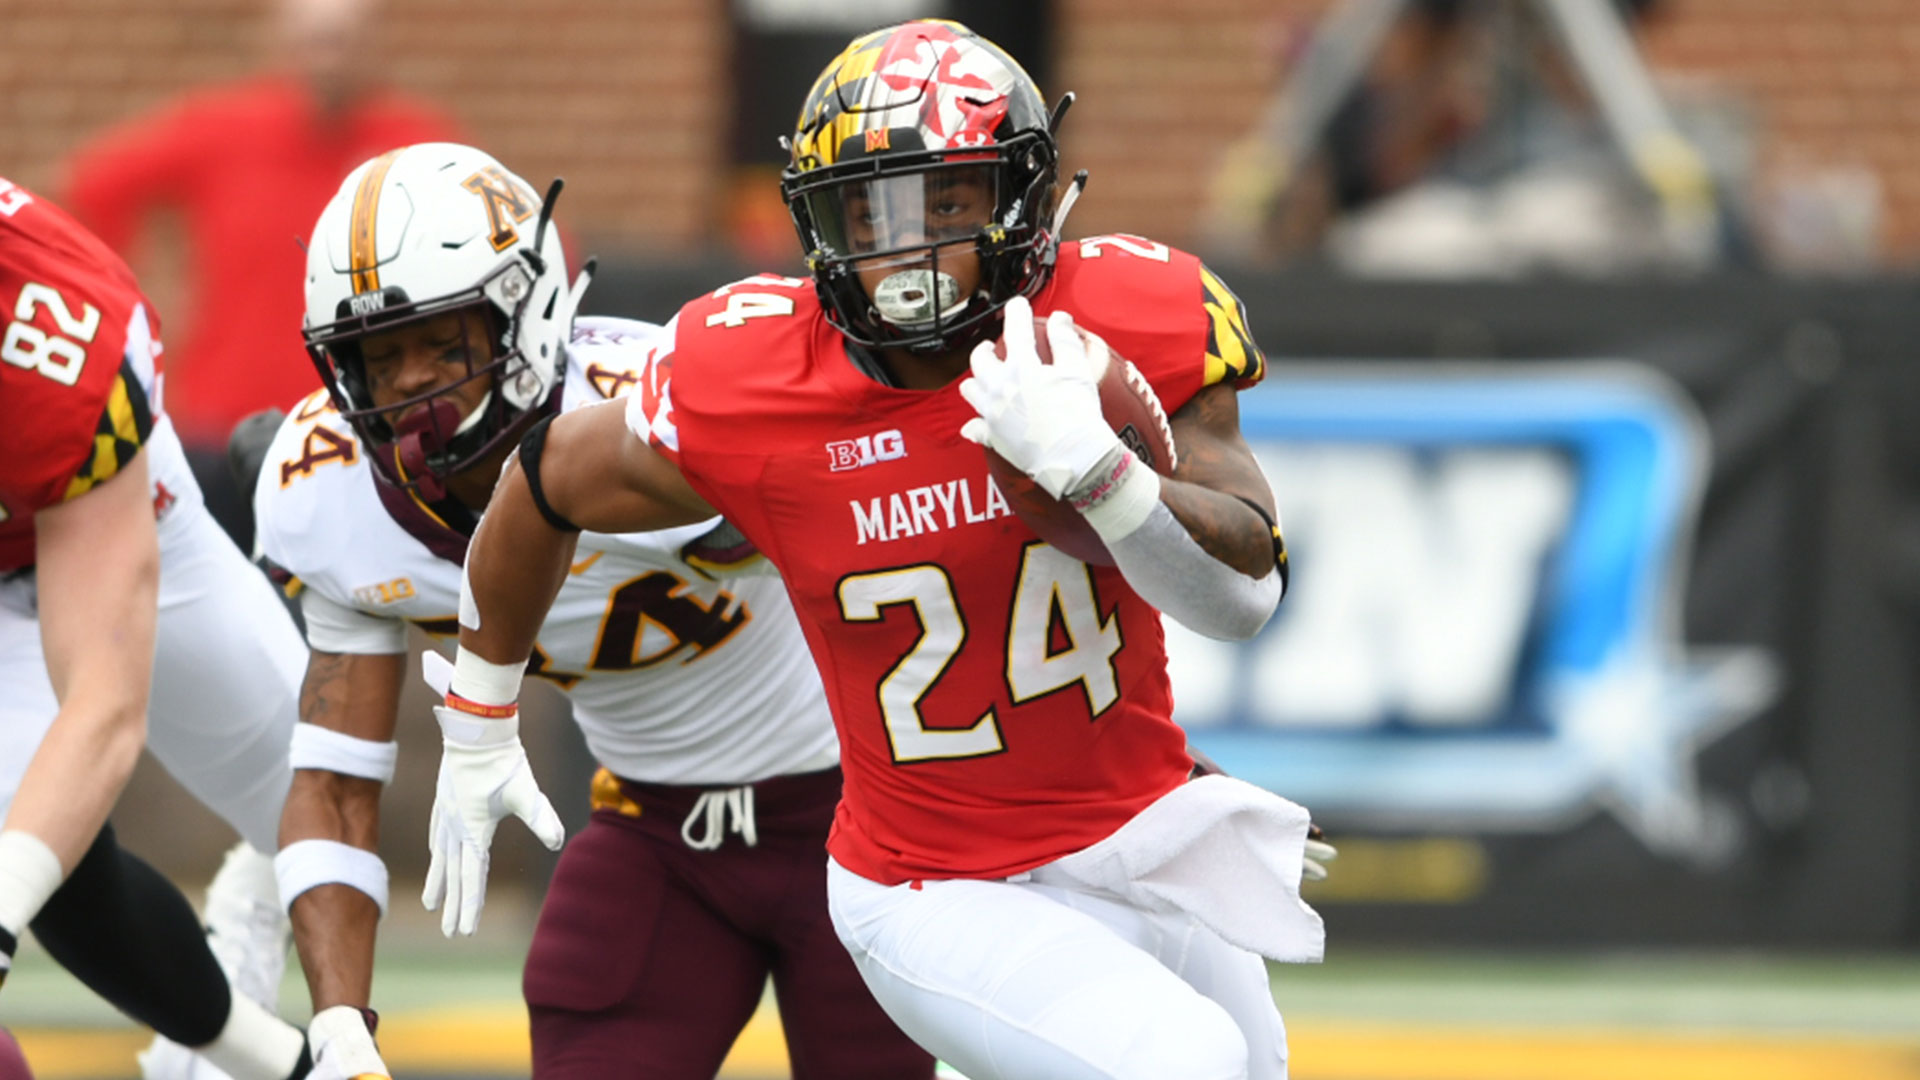 terps roll over gophers, 42-13 - university of maryland athletics